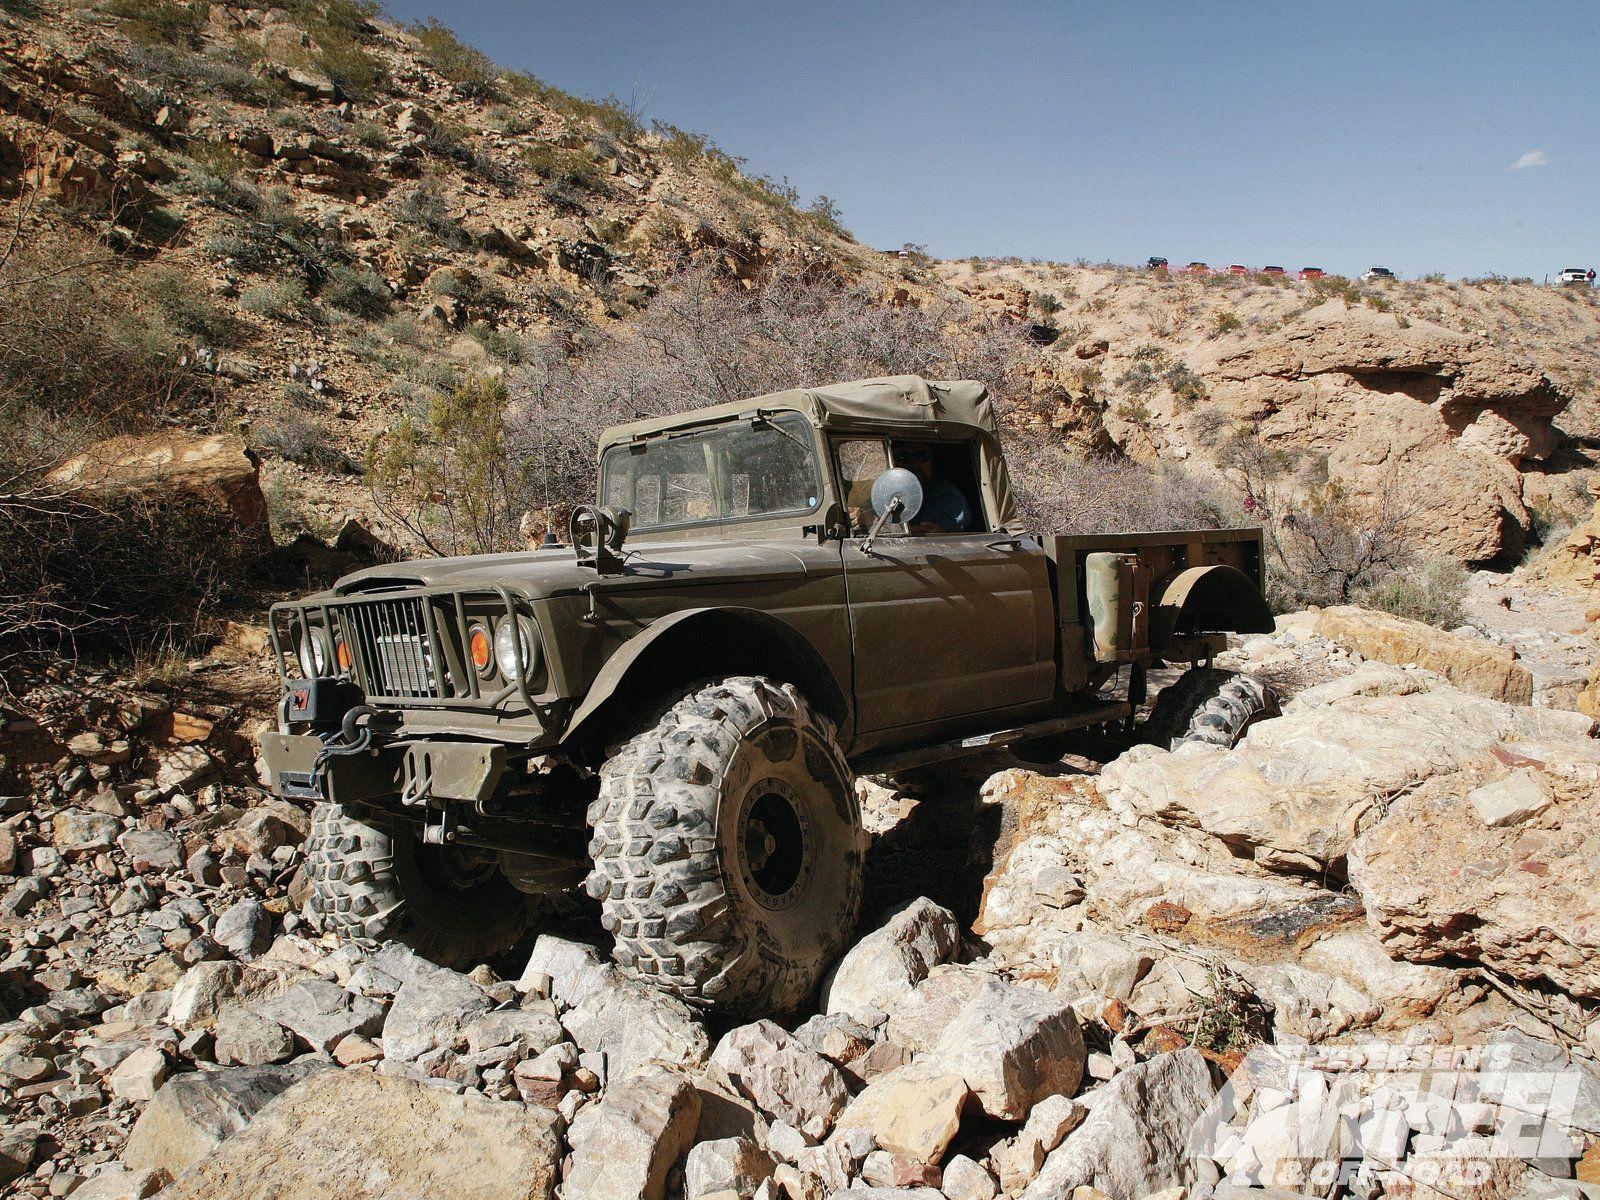 Kaiser Jeep M715 Wallpaper and Background Image | 1600x1200 | ID ...